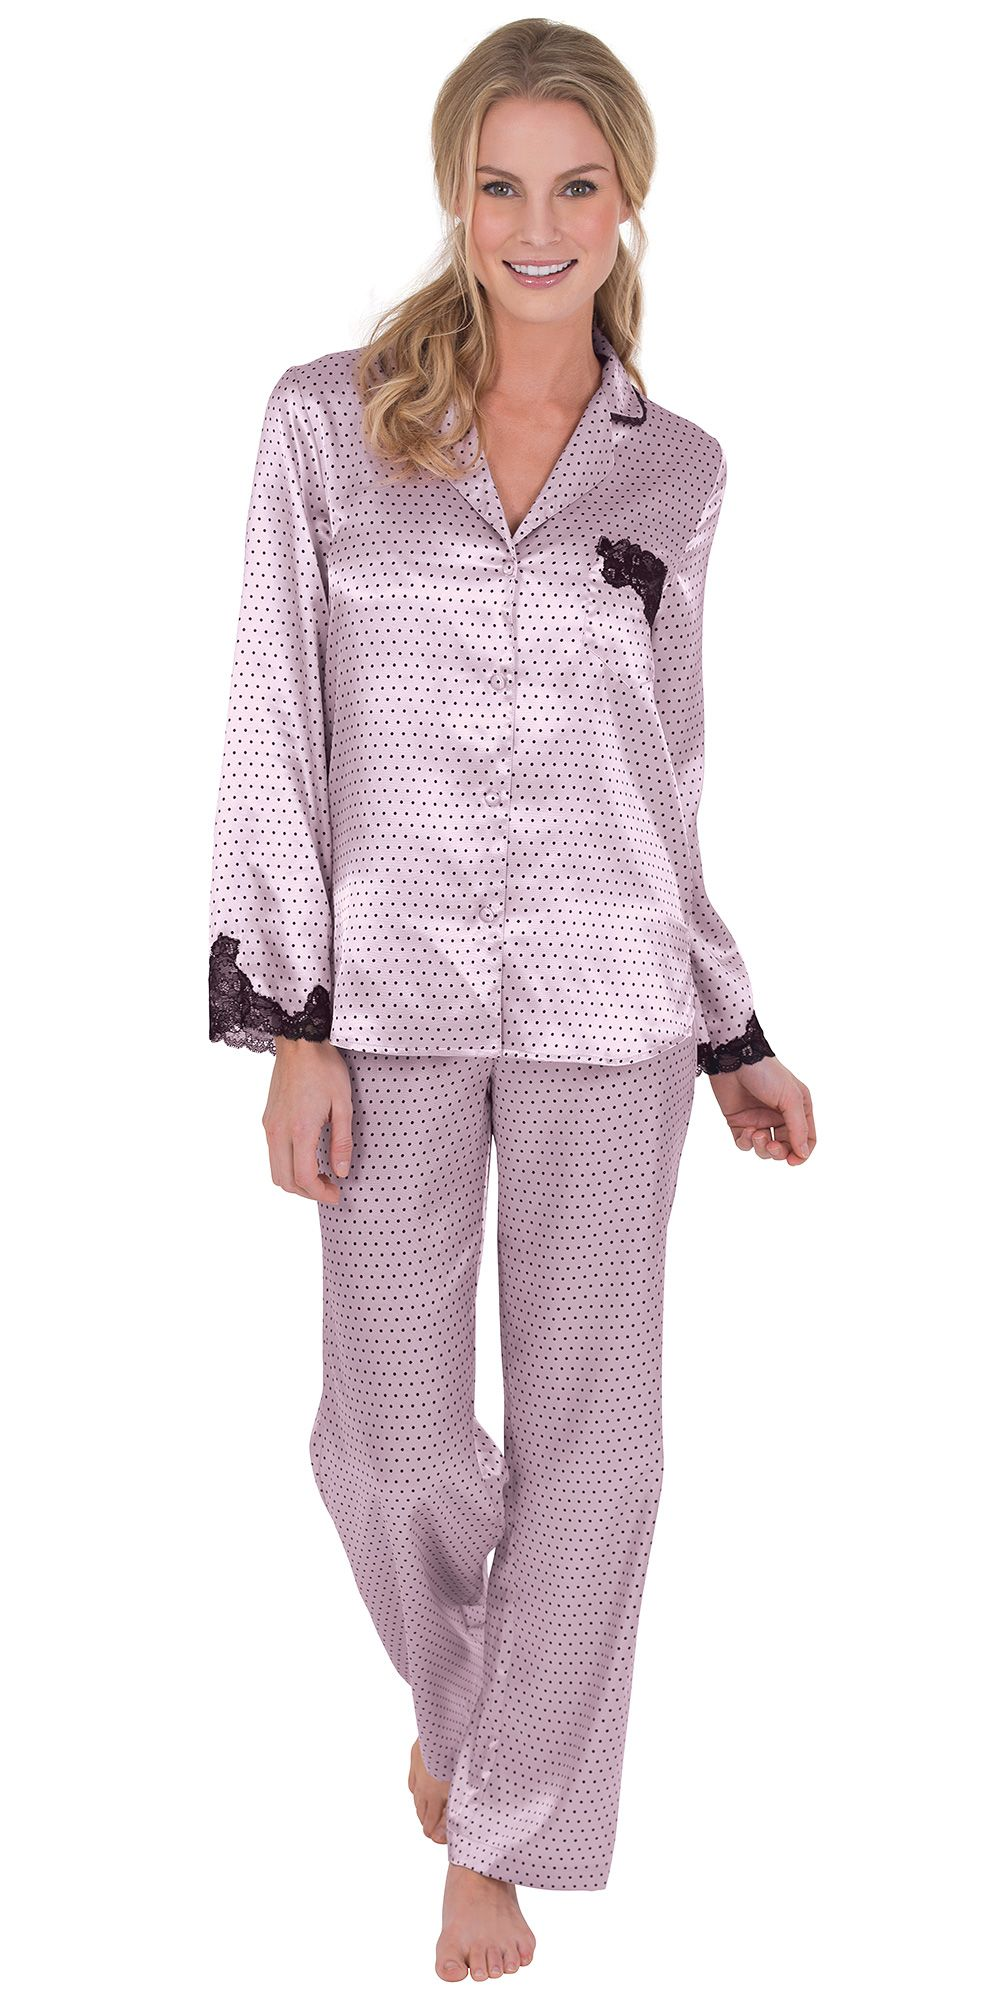 Night wear cliparts image freeuse stock Satin Pajamas Pajamas for Women for Men Party Tumblr for Kids ... image freeuse stock